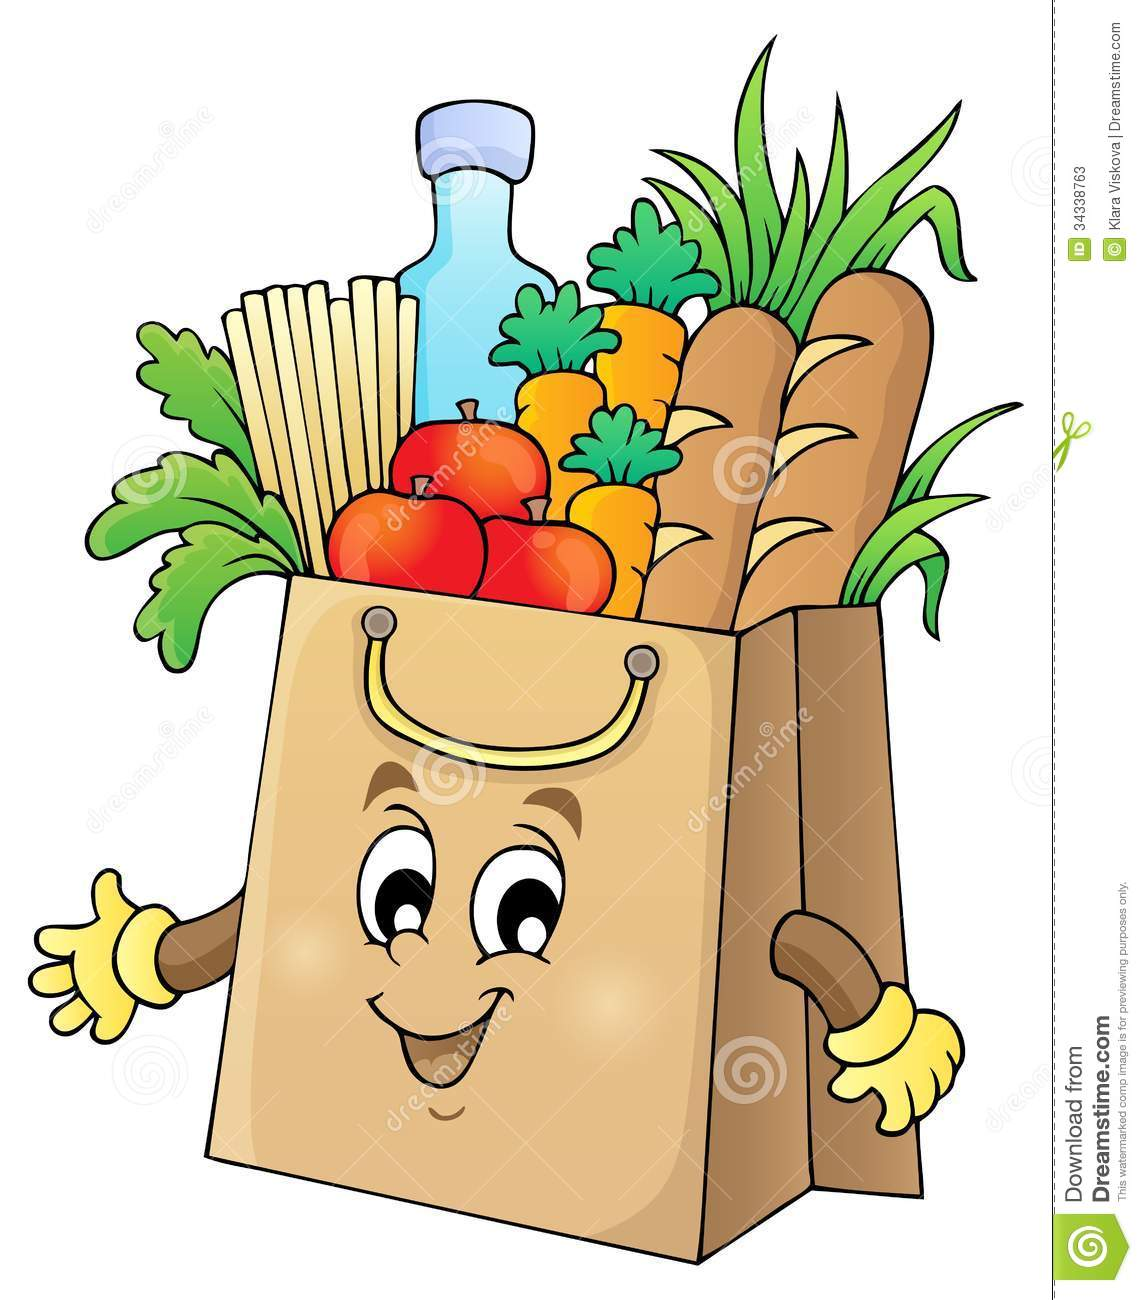 Grocery Bag Clip Art - Blogsbeta-Grocery Bag Clip Art - Blogsbeta-7